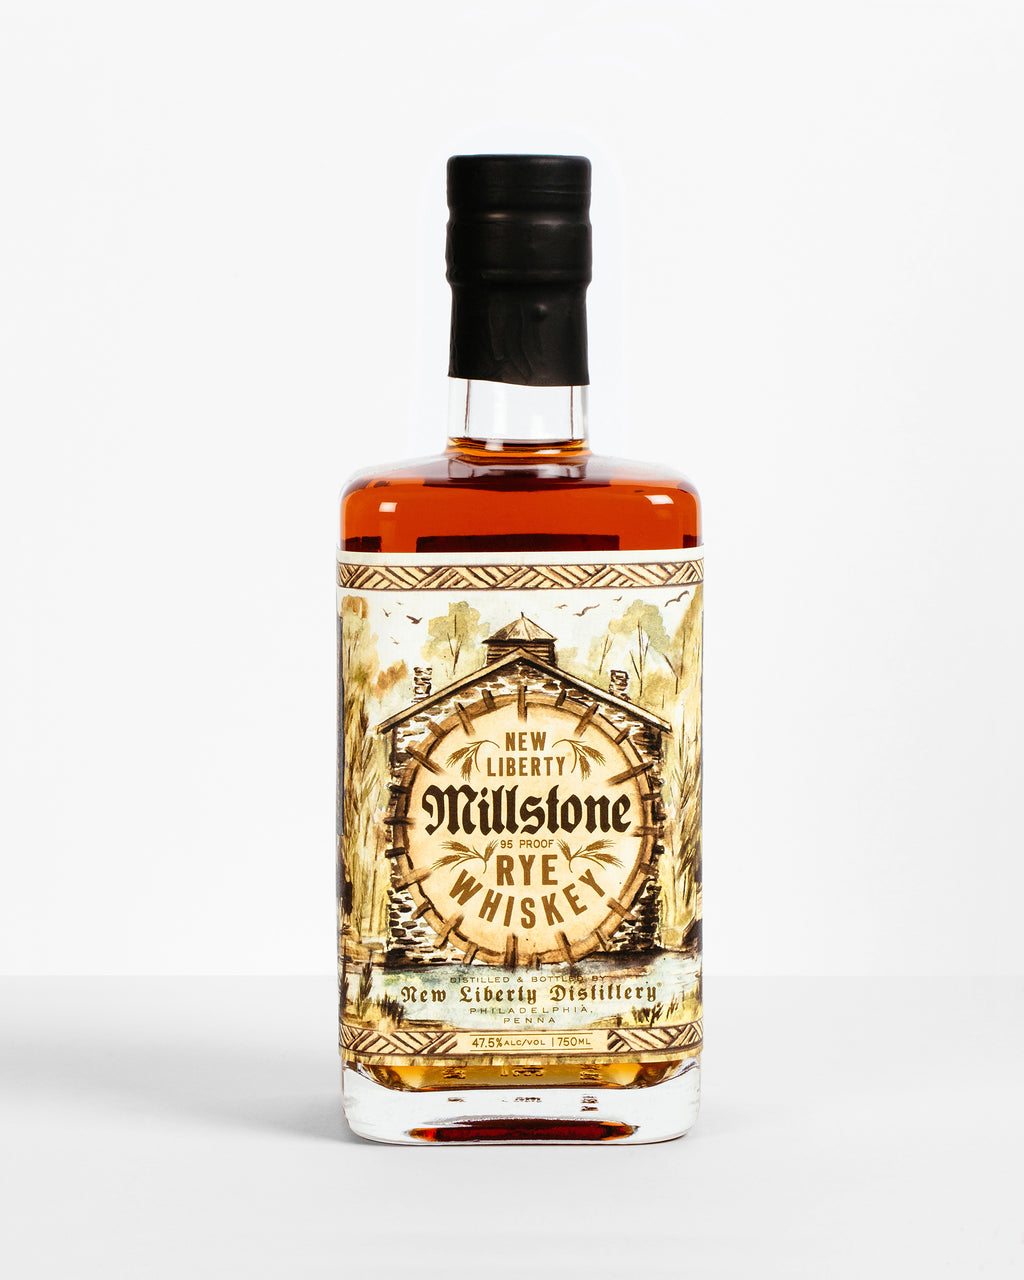 New Liberty Distillery Millstone Rye Whiskey